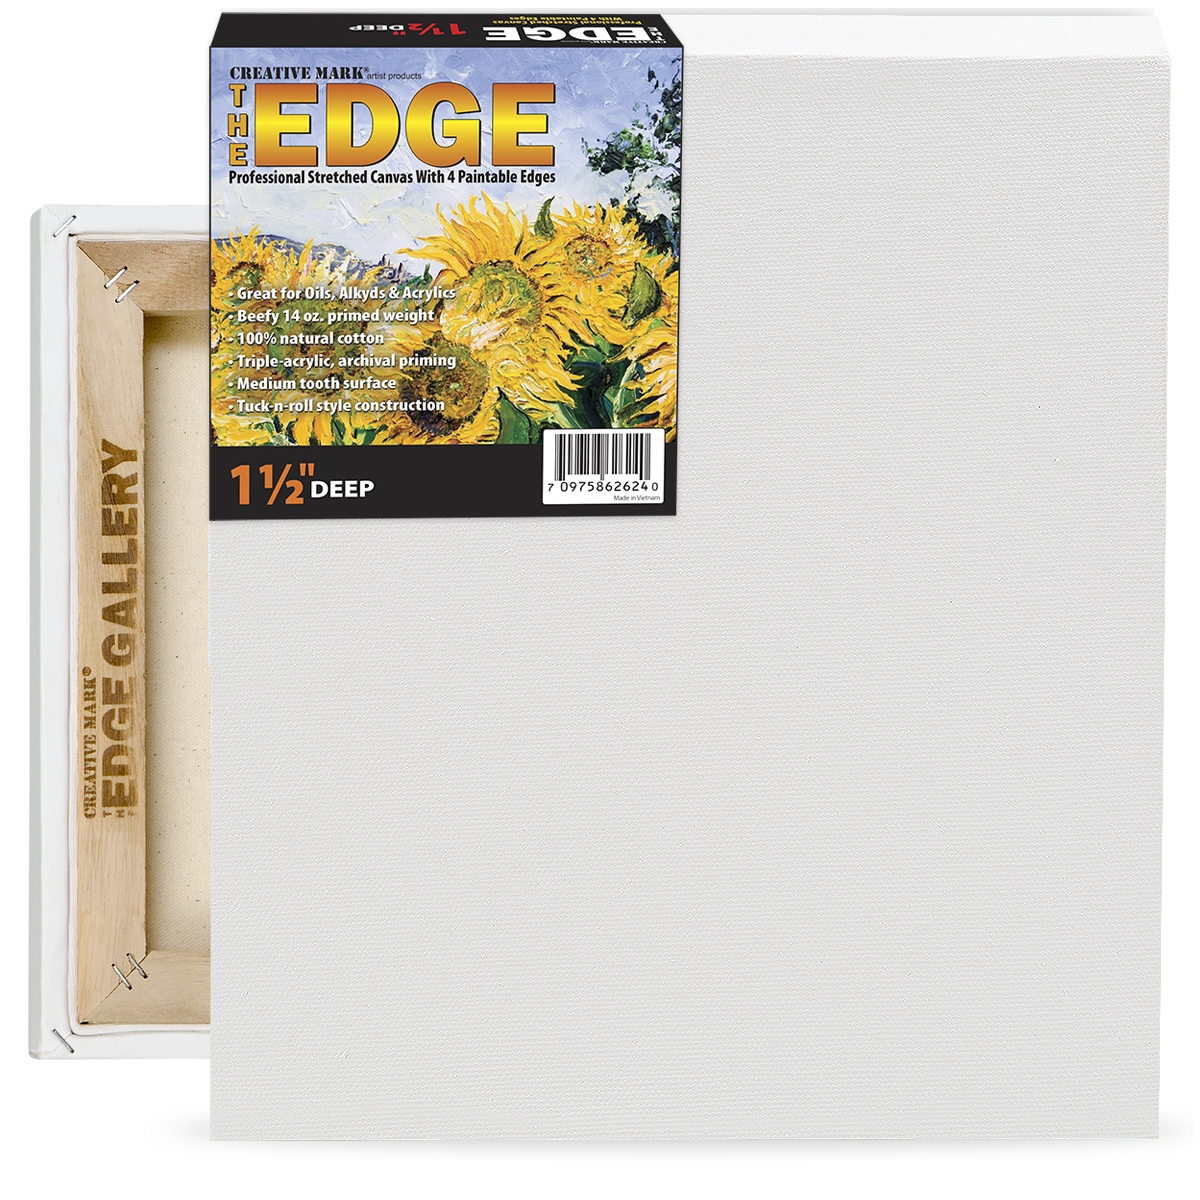 The Edge All Media Cotton Deluxe Stretched Canvas 1-1/2 Deep